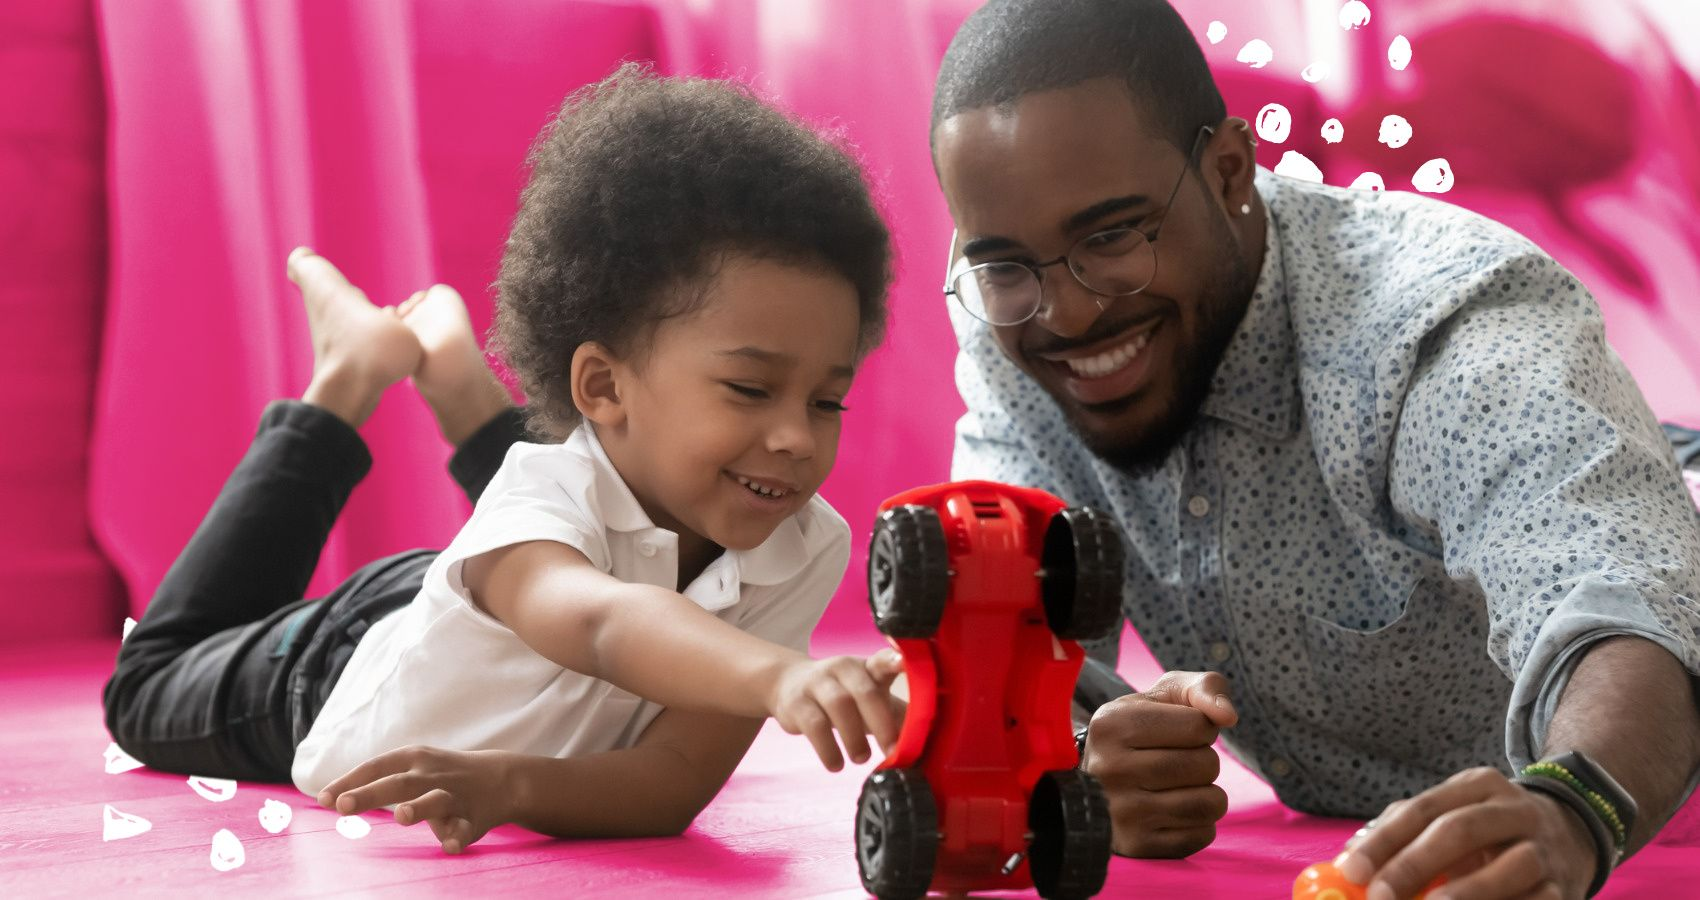 Toys Have Been More Important This Year | Moms.com